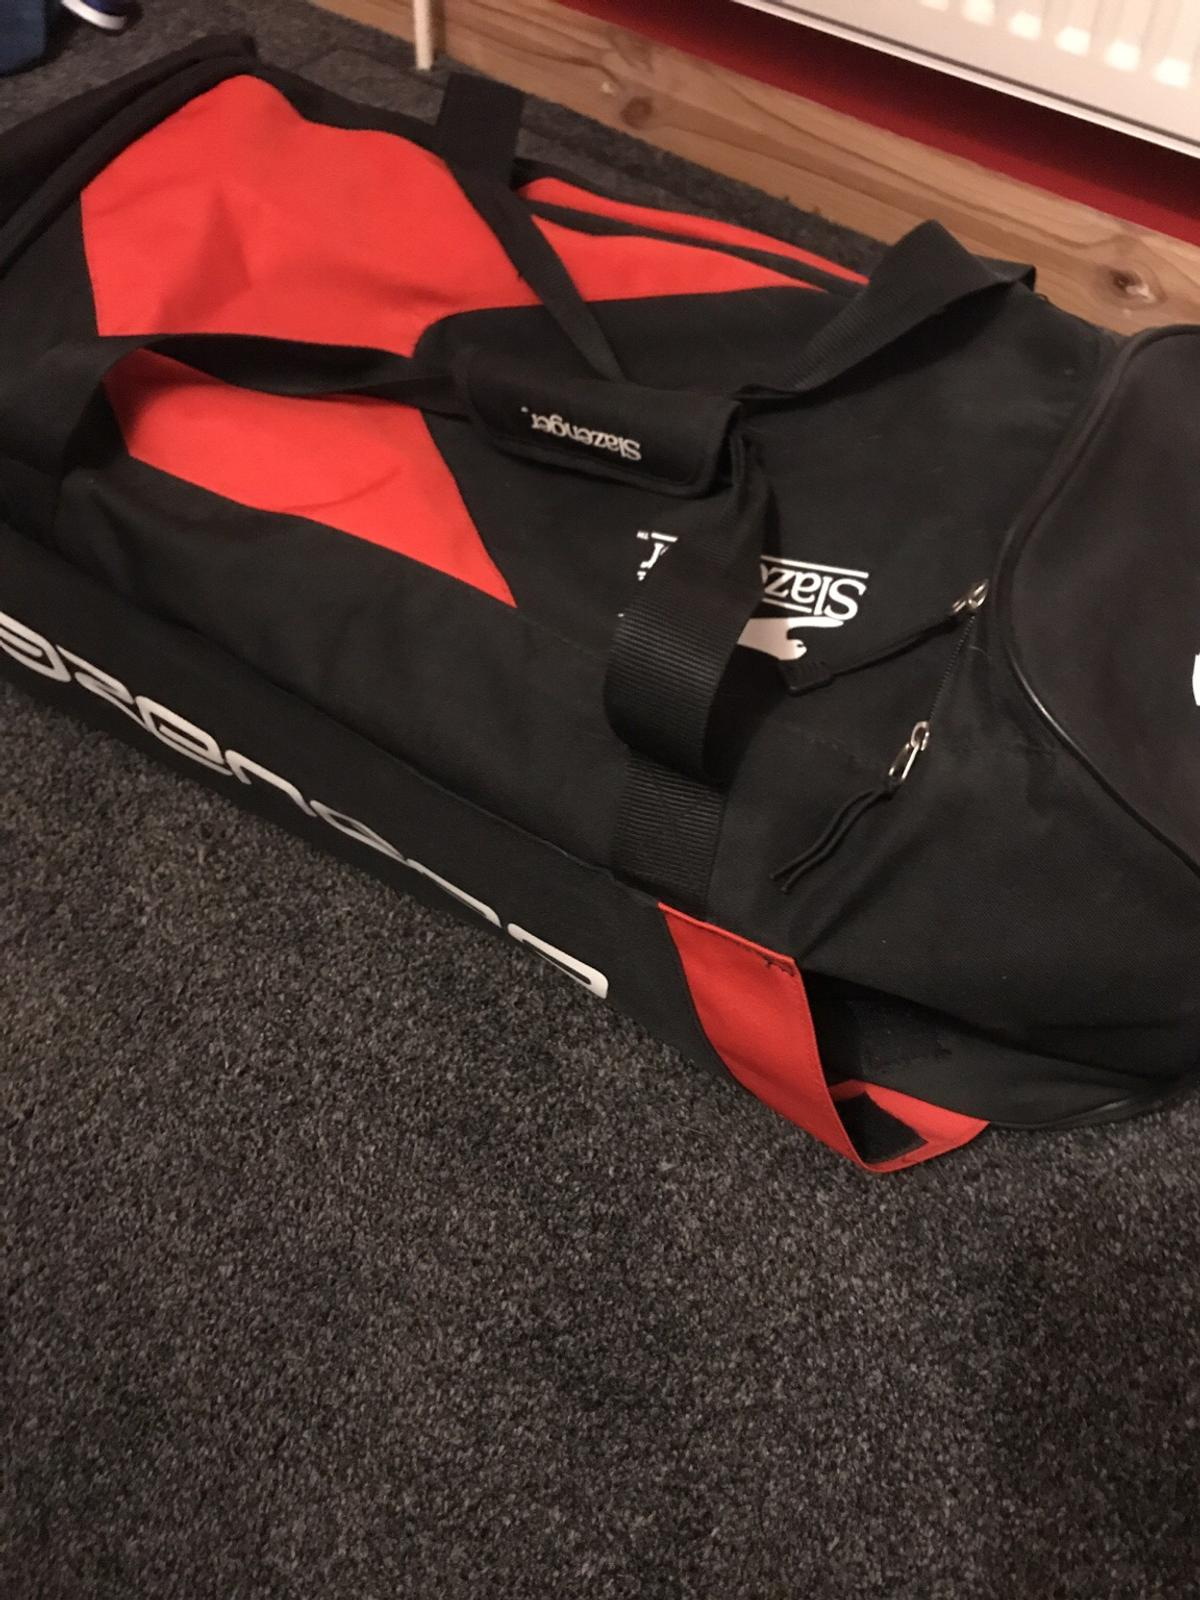 fec9e69714 Slazenger Cricket bag in RH15 Burgess Hill for £10.00 for sale - Shpock